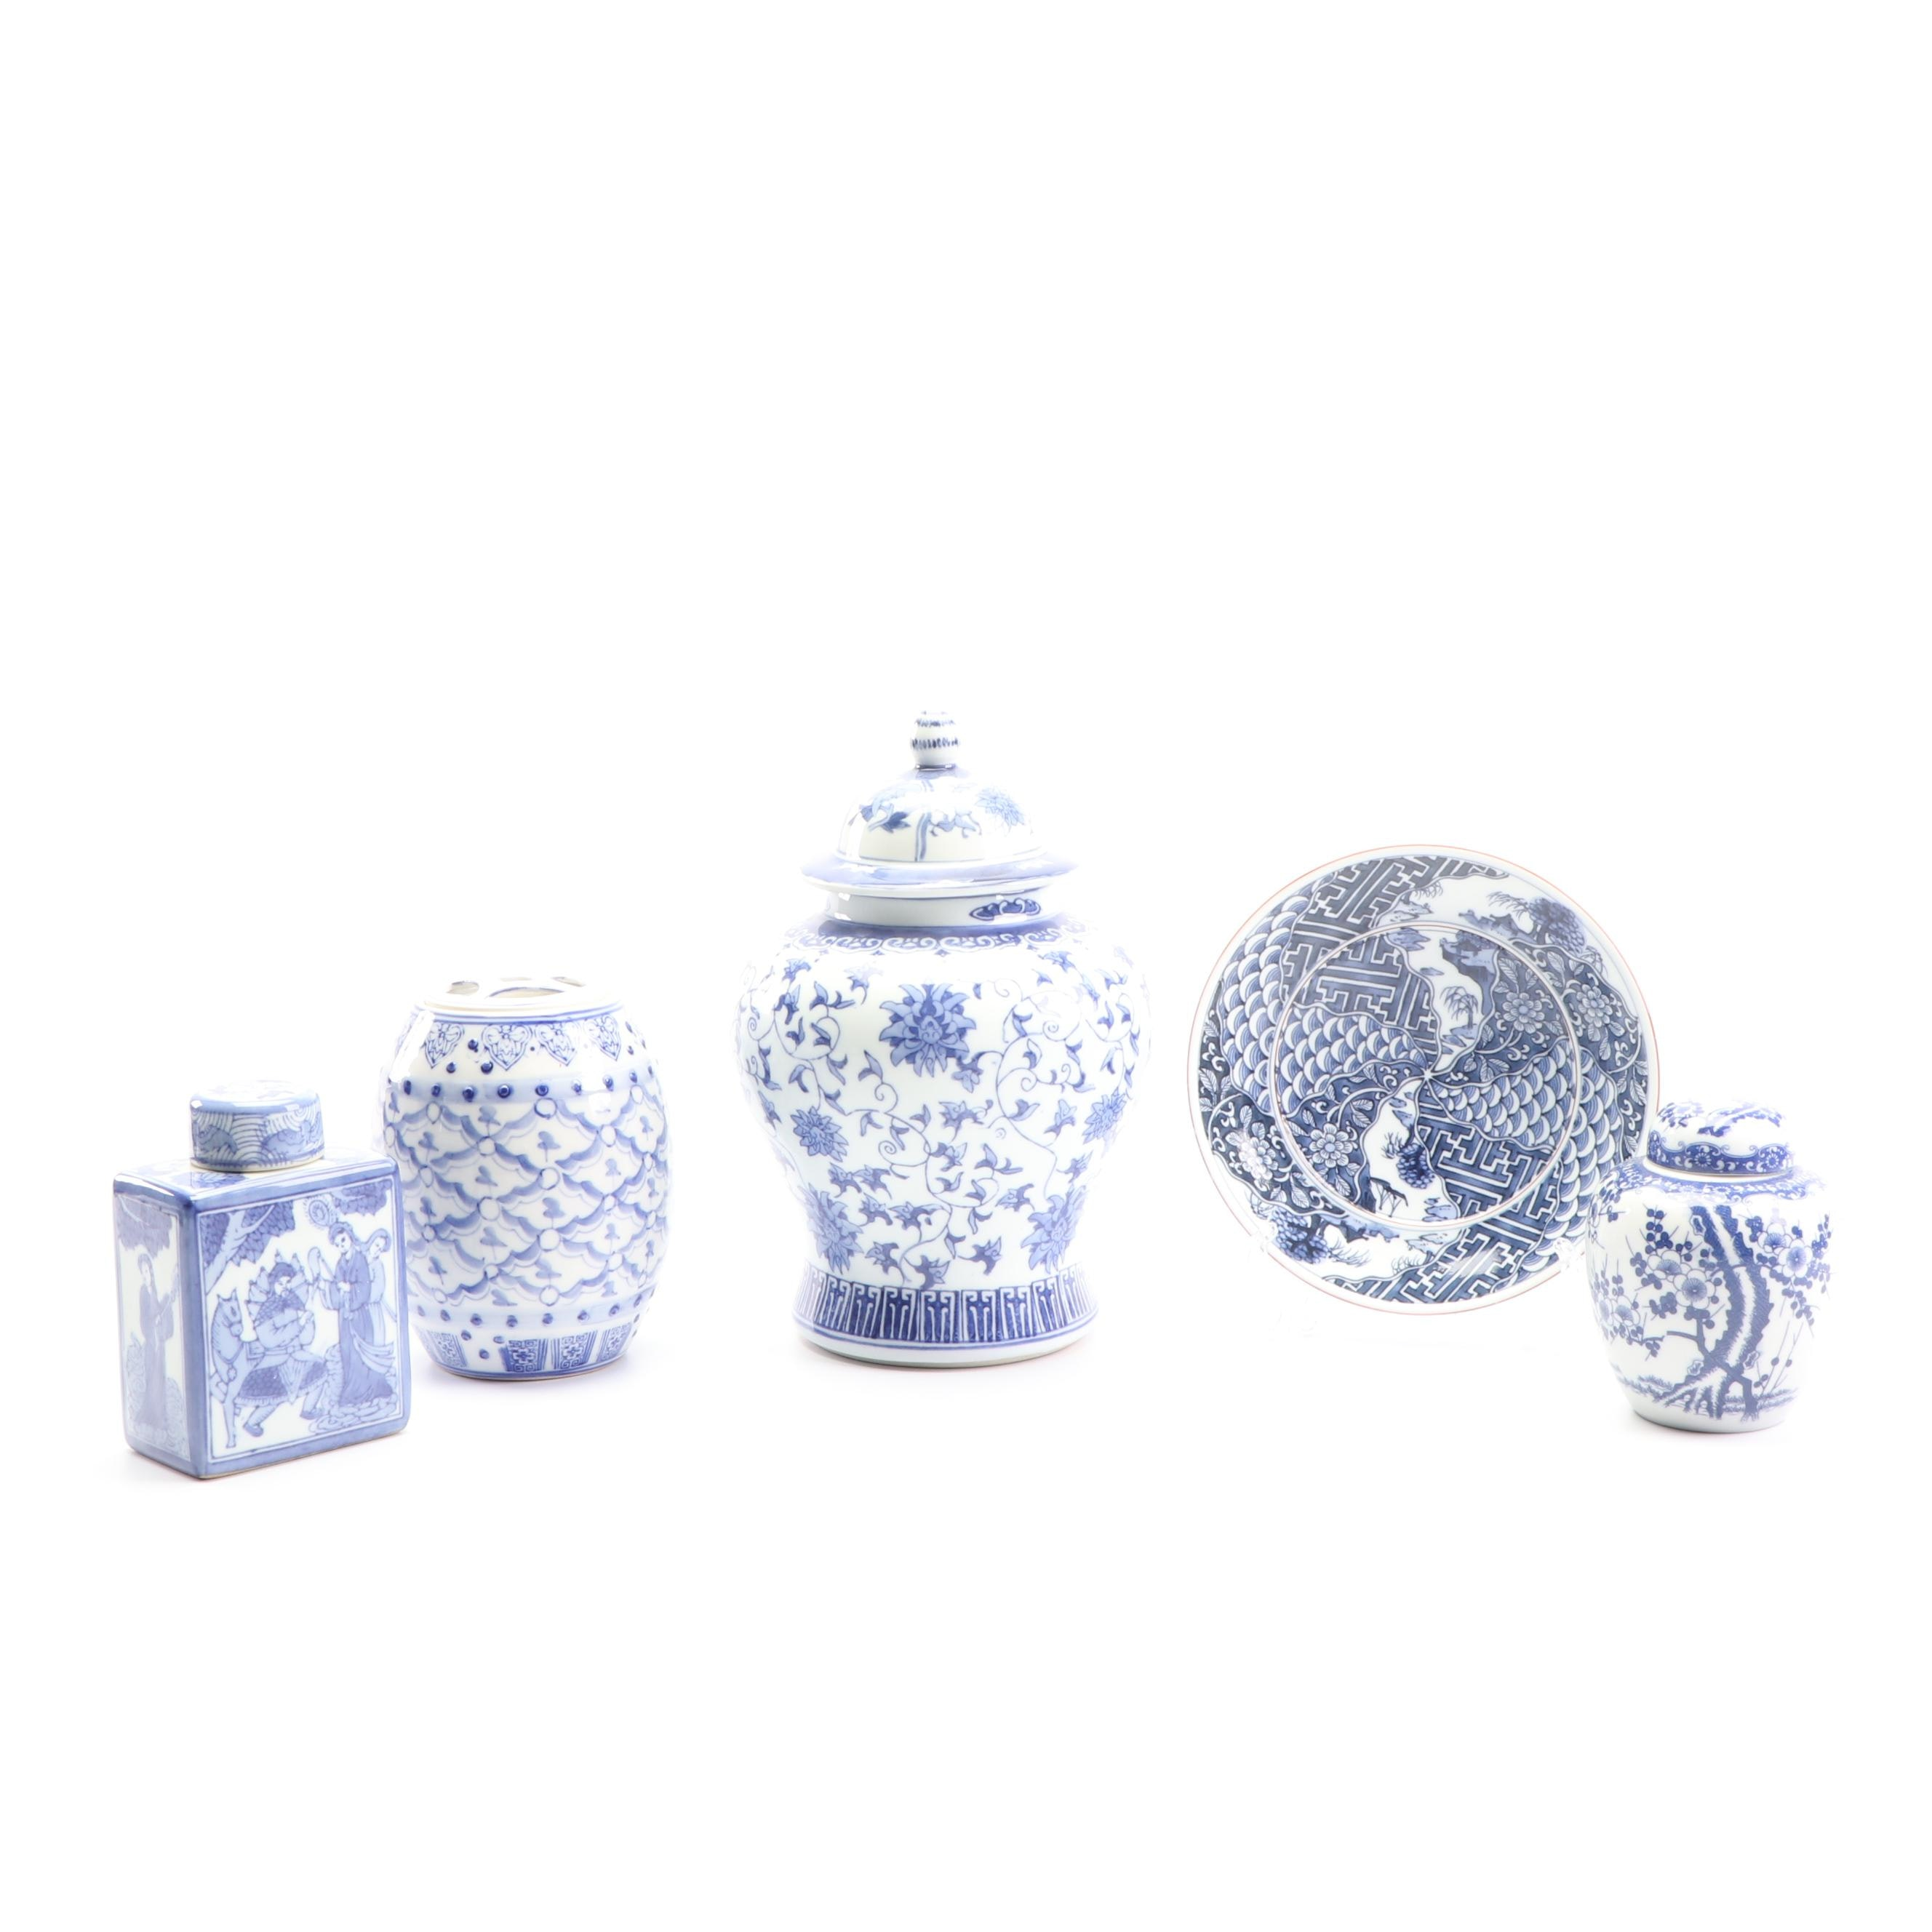 Chinese Blue and White Porcelain Ginger Jars, Vase, and Plate